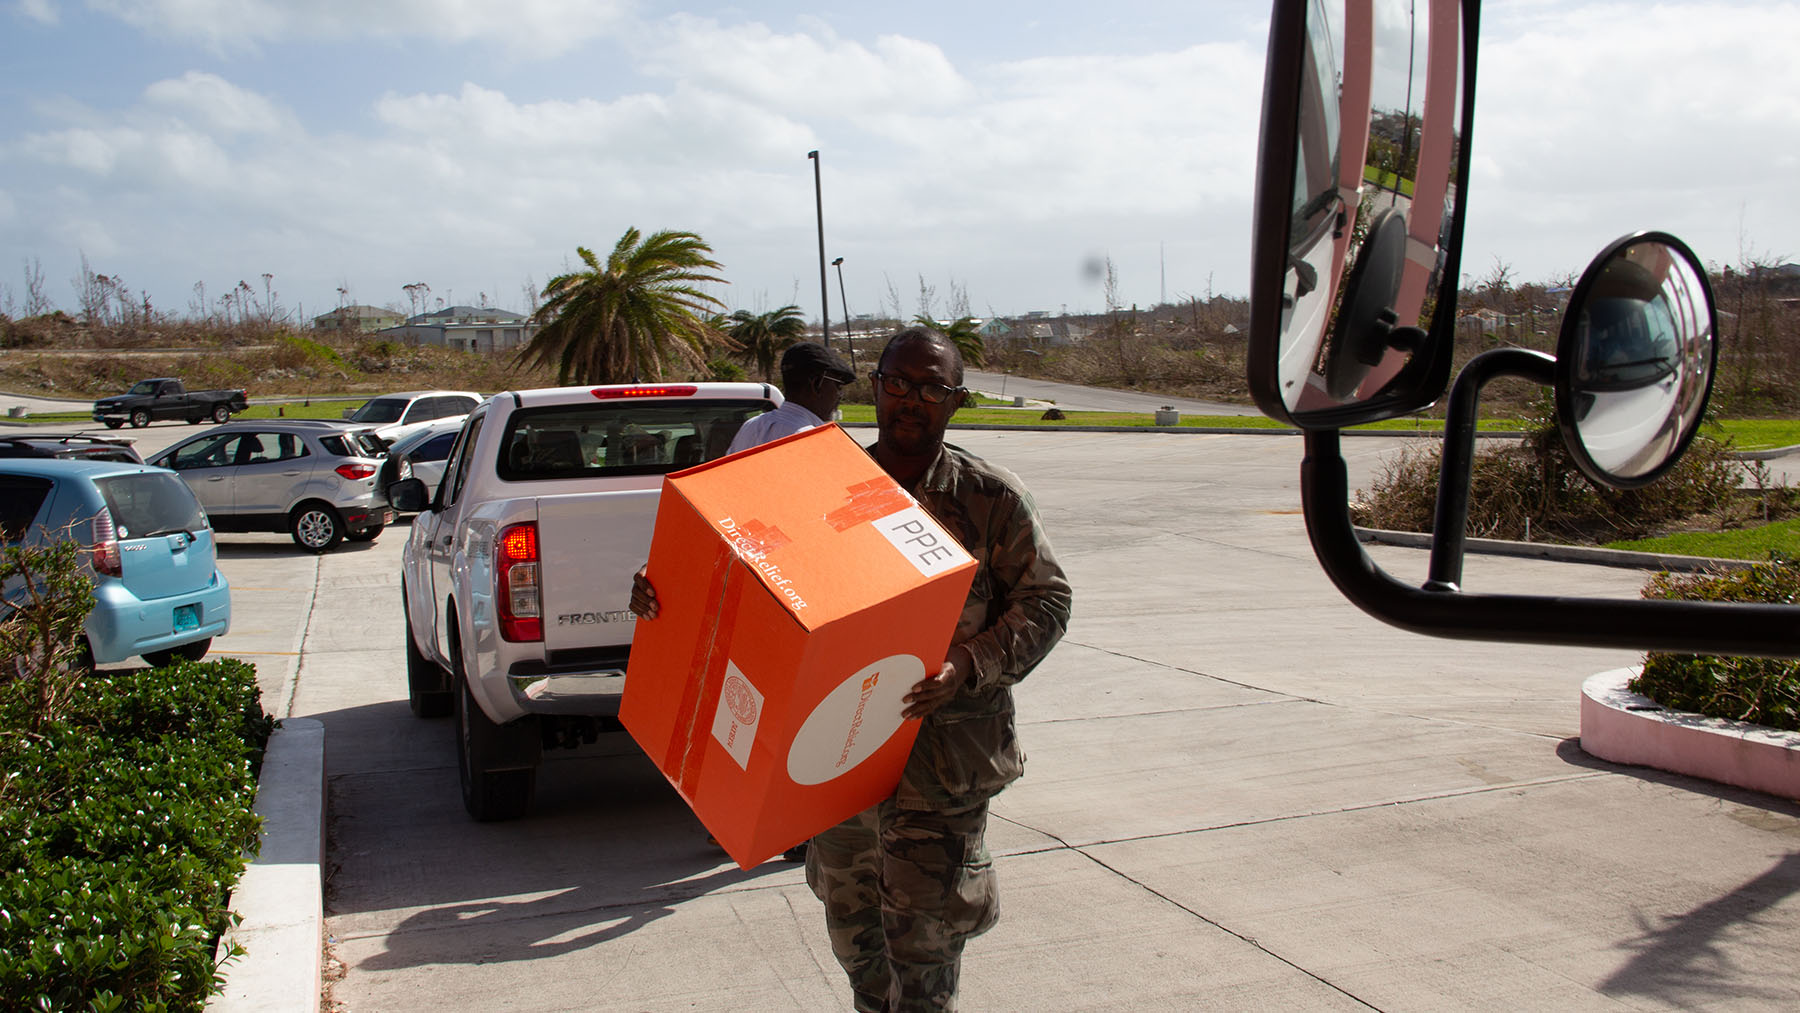 Emergency medicines and supplies are delivered to Marsh Harbour in the Bahamas after Hurricane Dorian battered the islands in August. (Direct Relief)